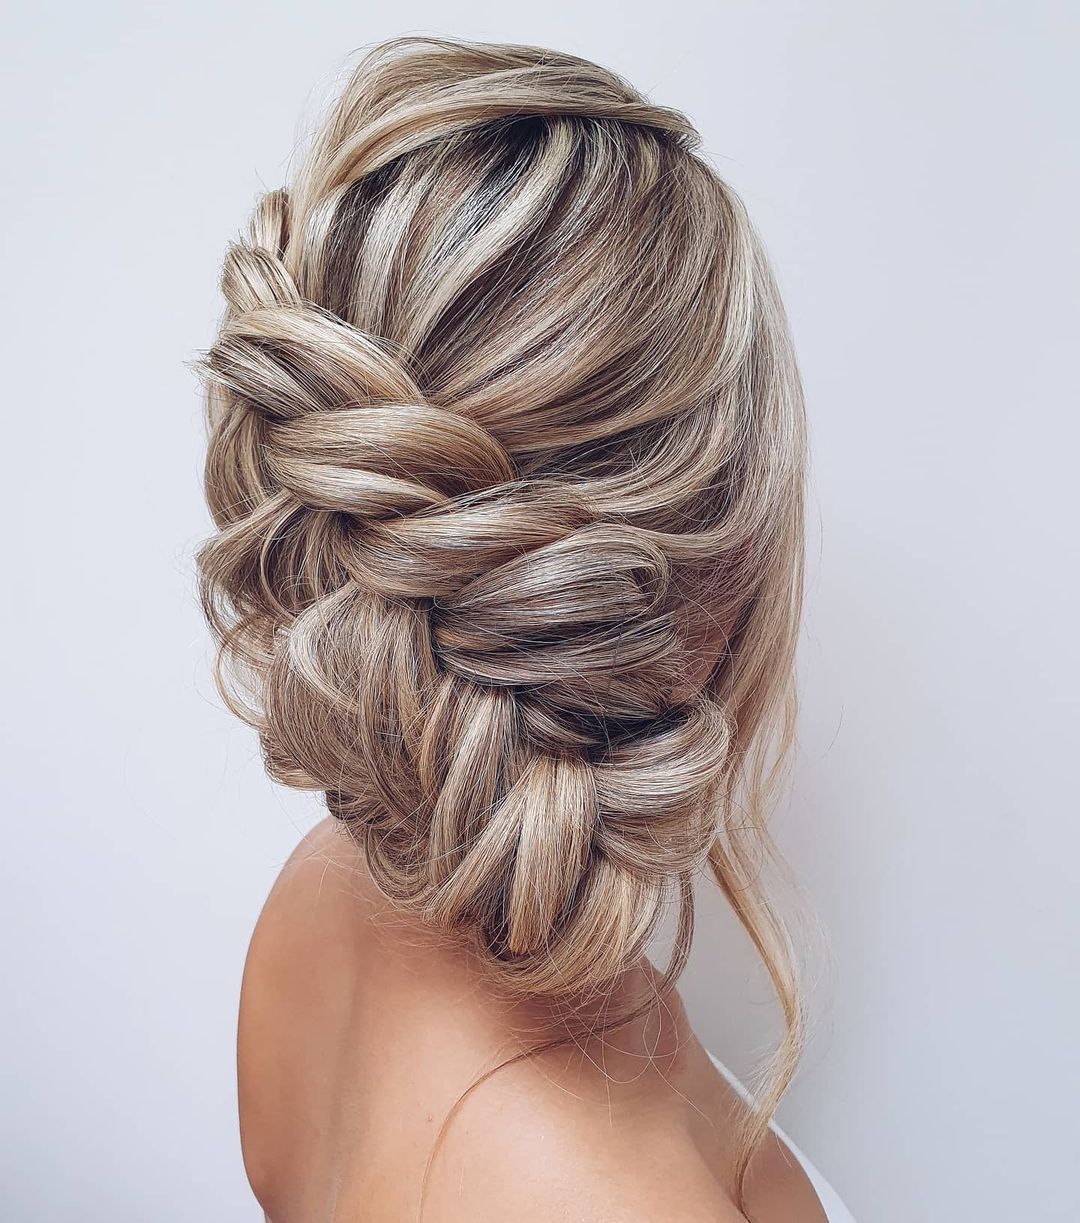 Loosely Braided Updo for Bridesmaids